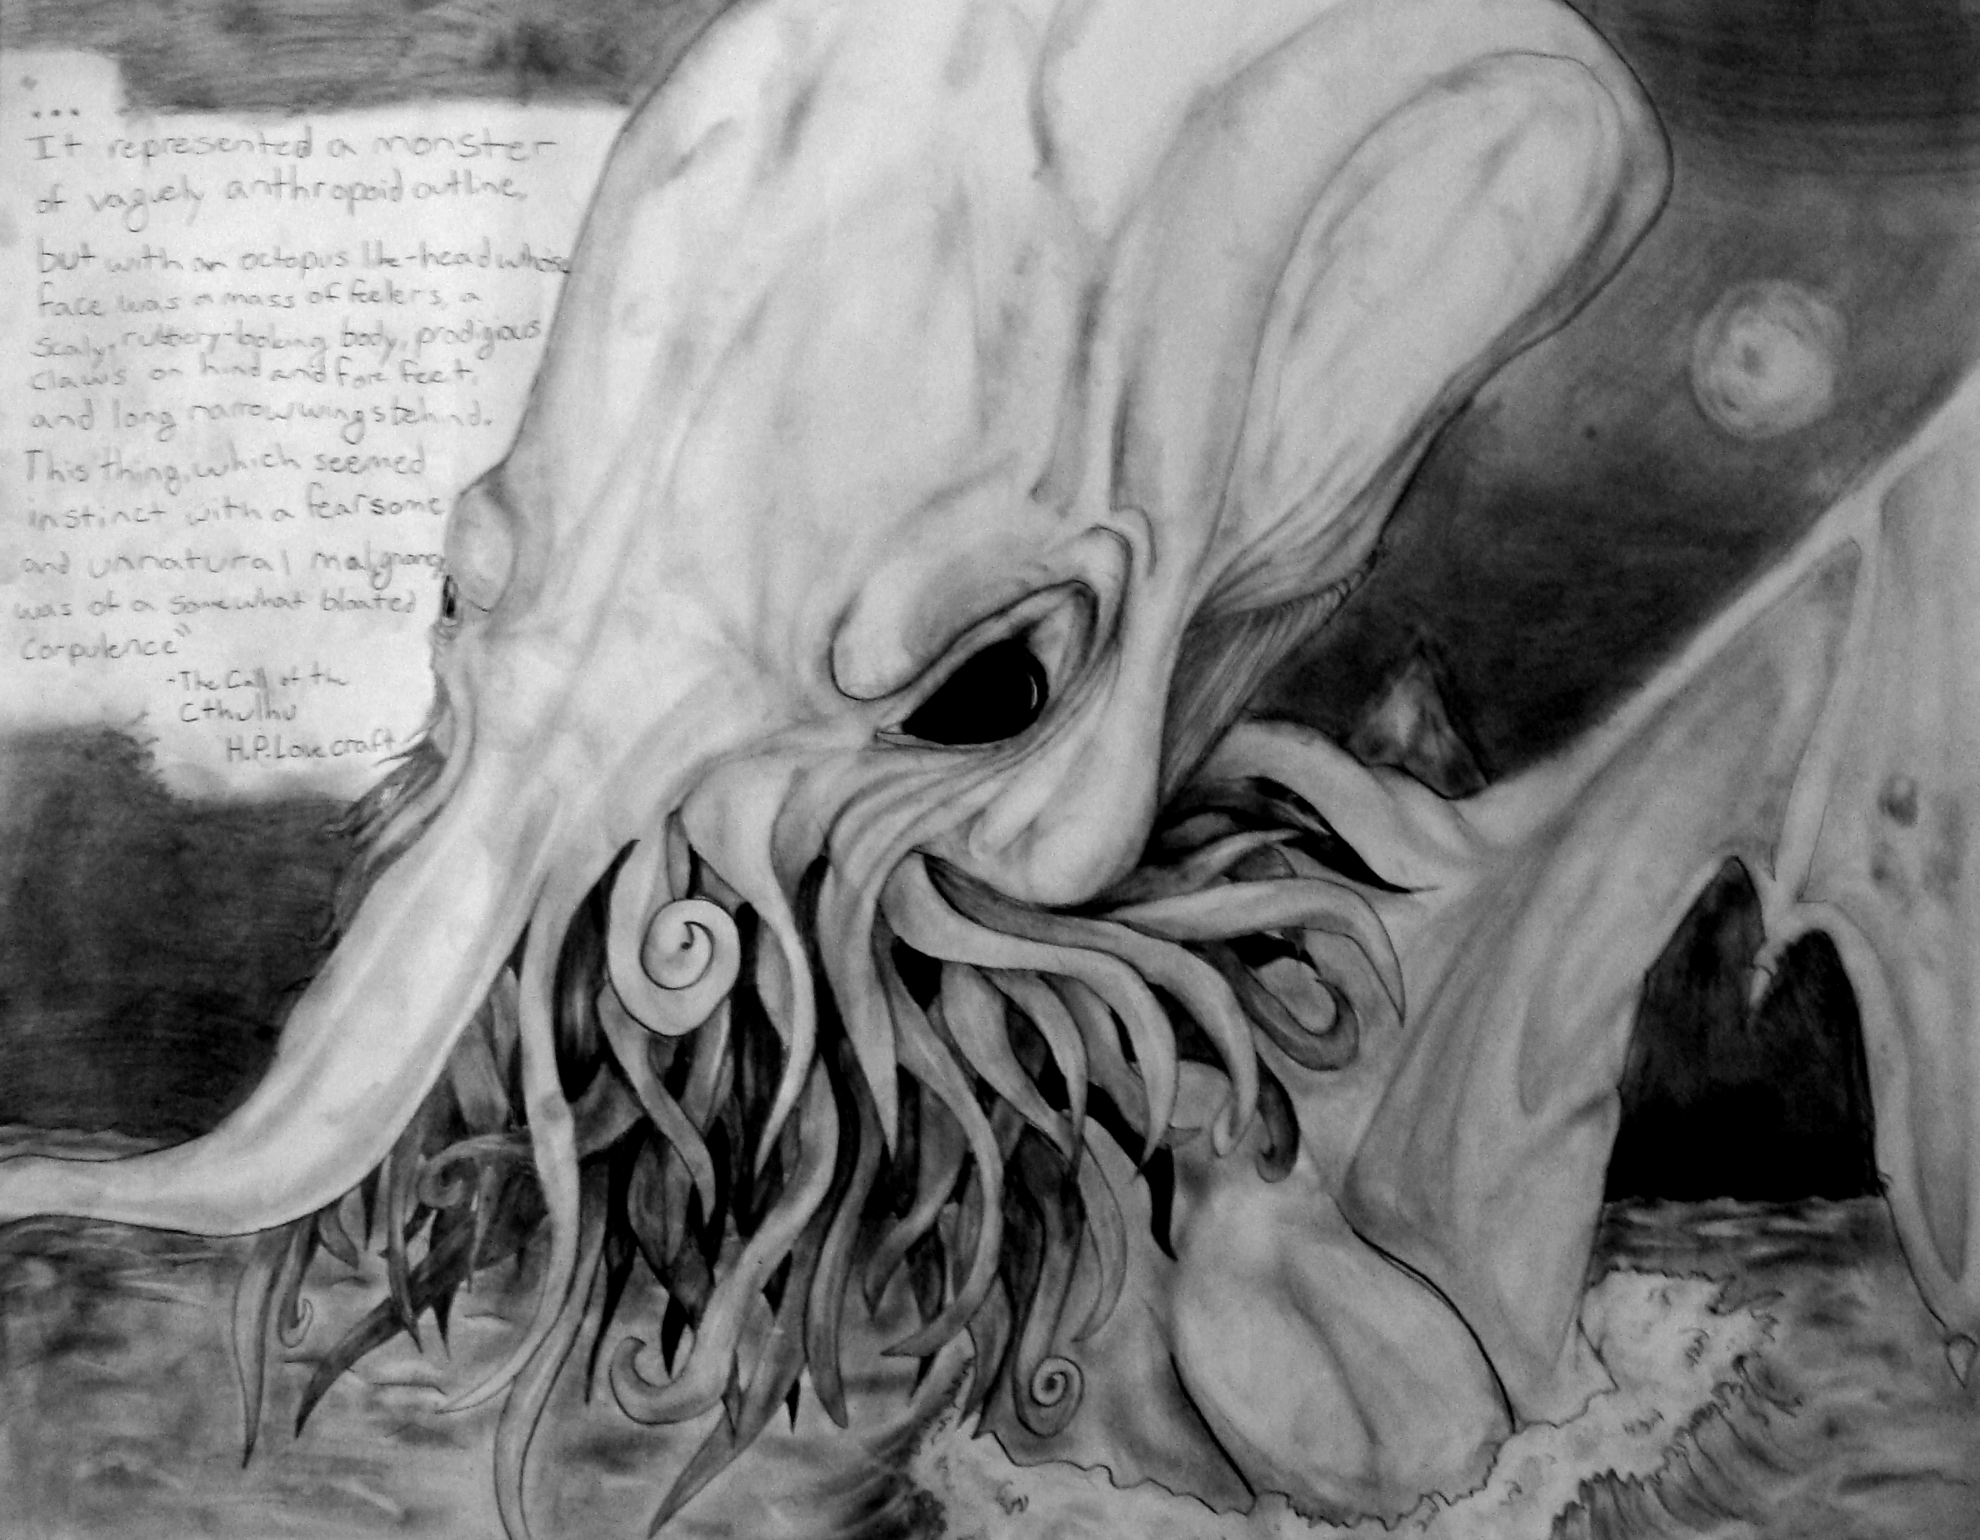 Interpretation of the Cthulhu